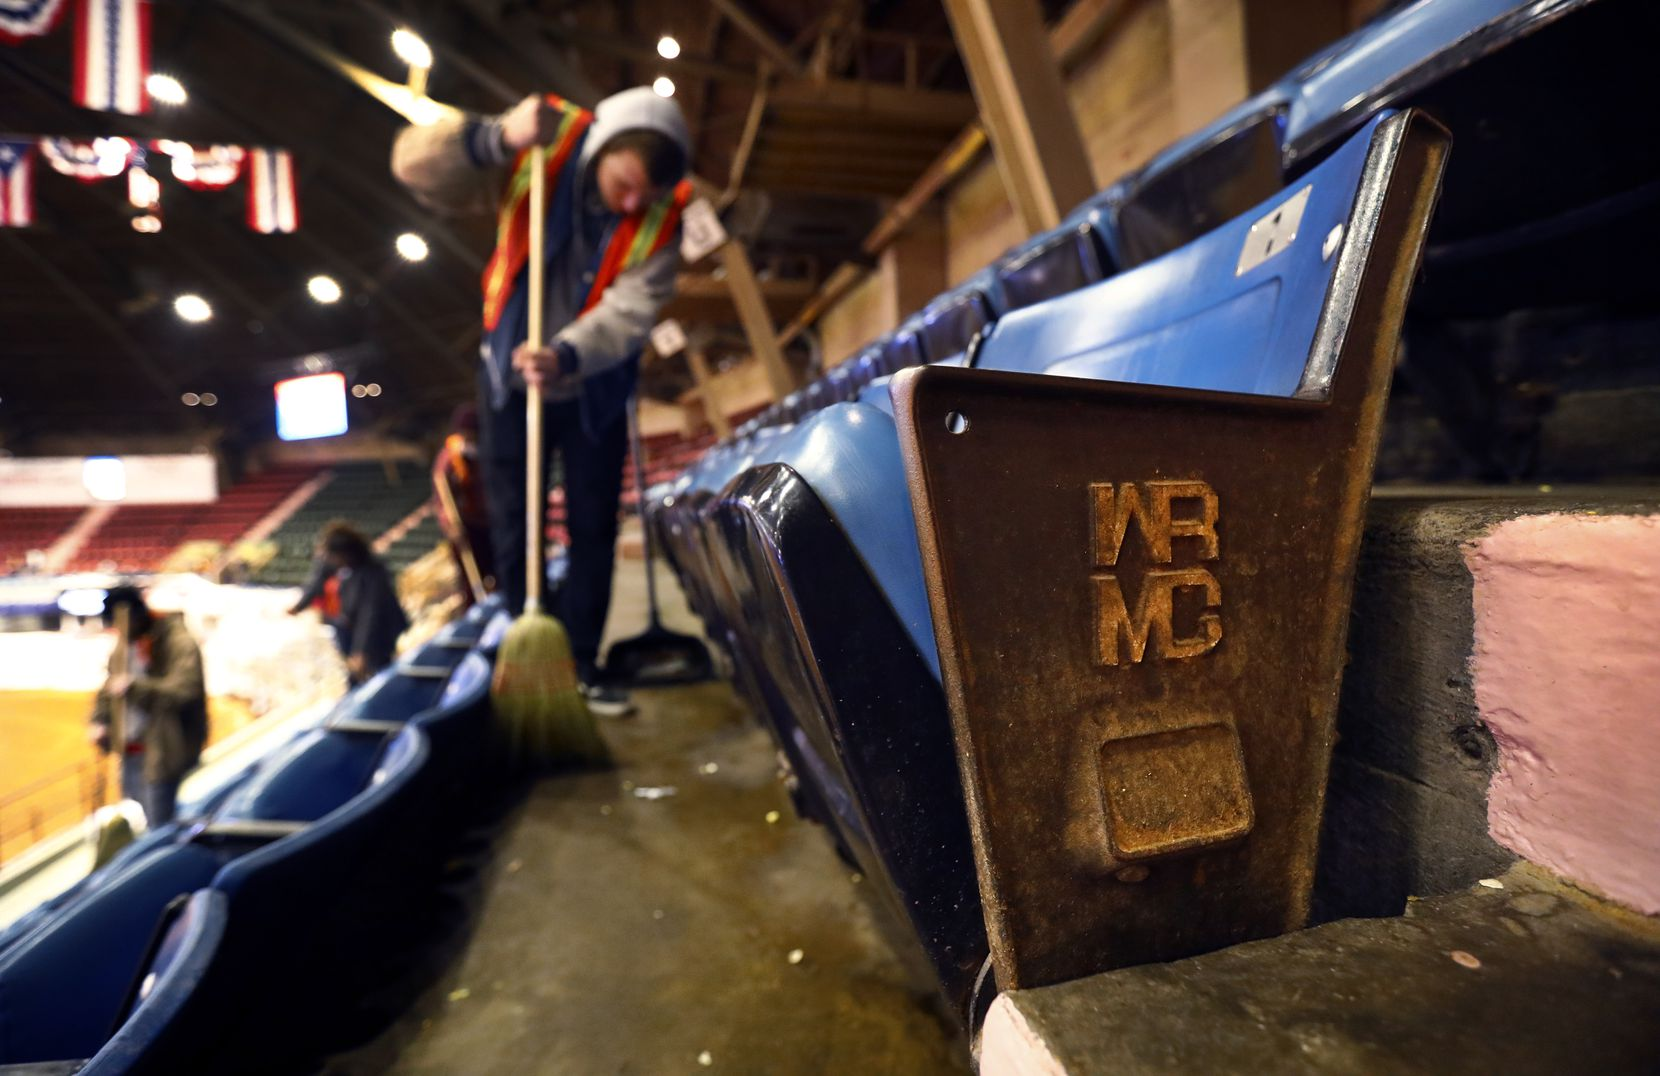 The WRMC (Will Rogers Memorial Coliseum) logo aisle seats have seen better days. Crews clean up after a PRCA rodeo event as the clock ticks down on the last of the events in the coliseum, Friday, February 1, 2019.